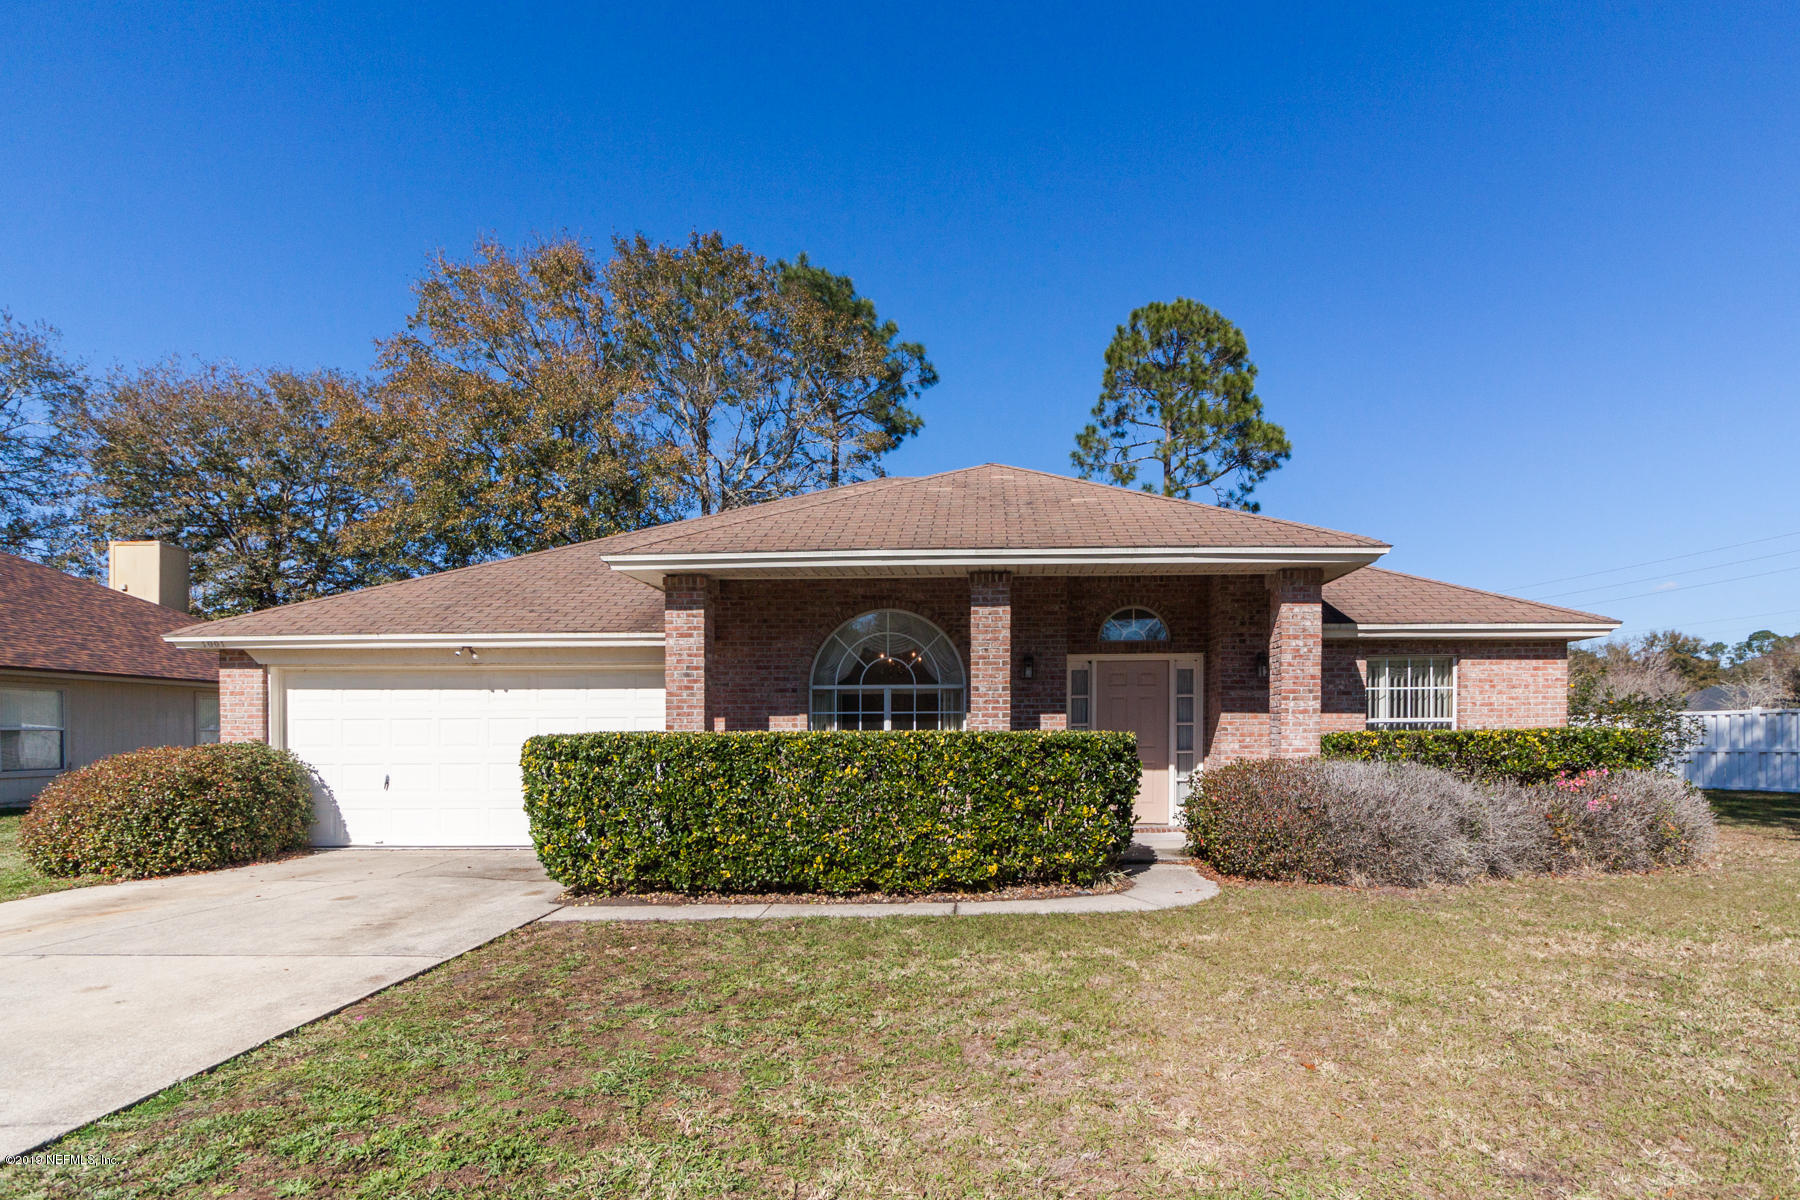 1001  DURBIN PARKE DR, Saint Johns in ST. JOHNS County, FL 32259 Home for Sale